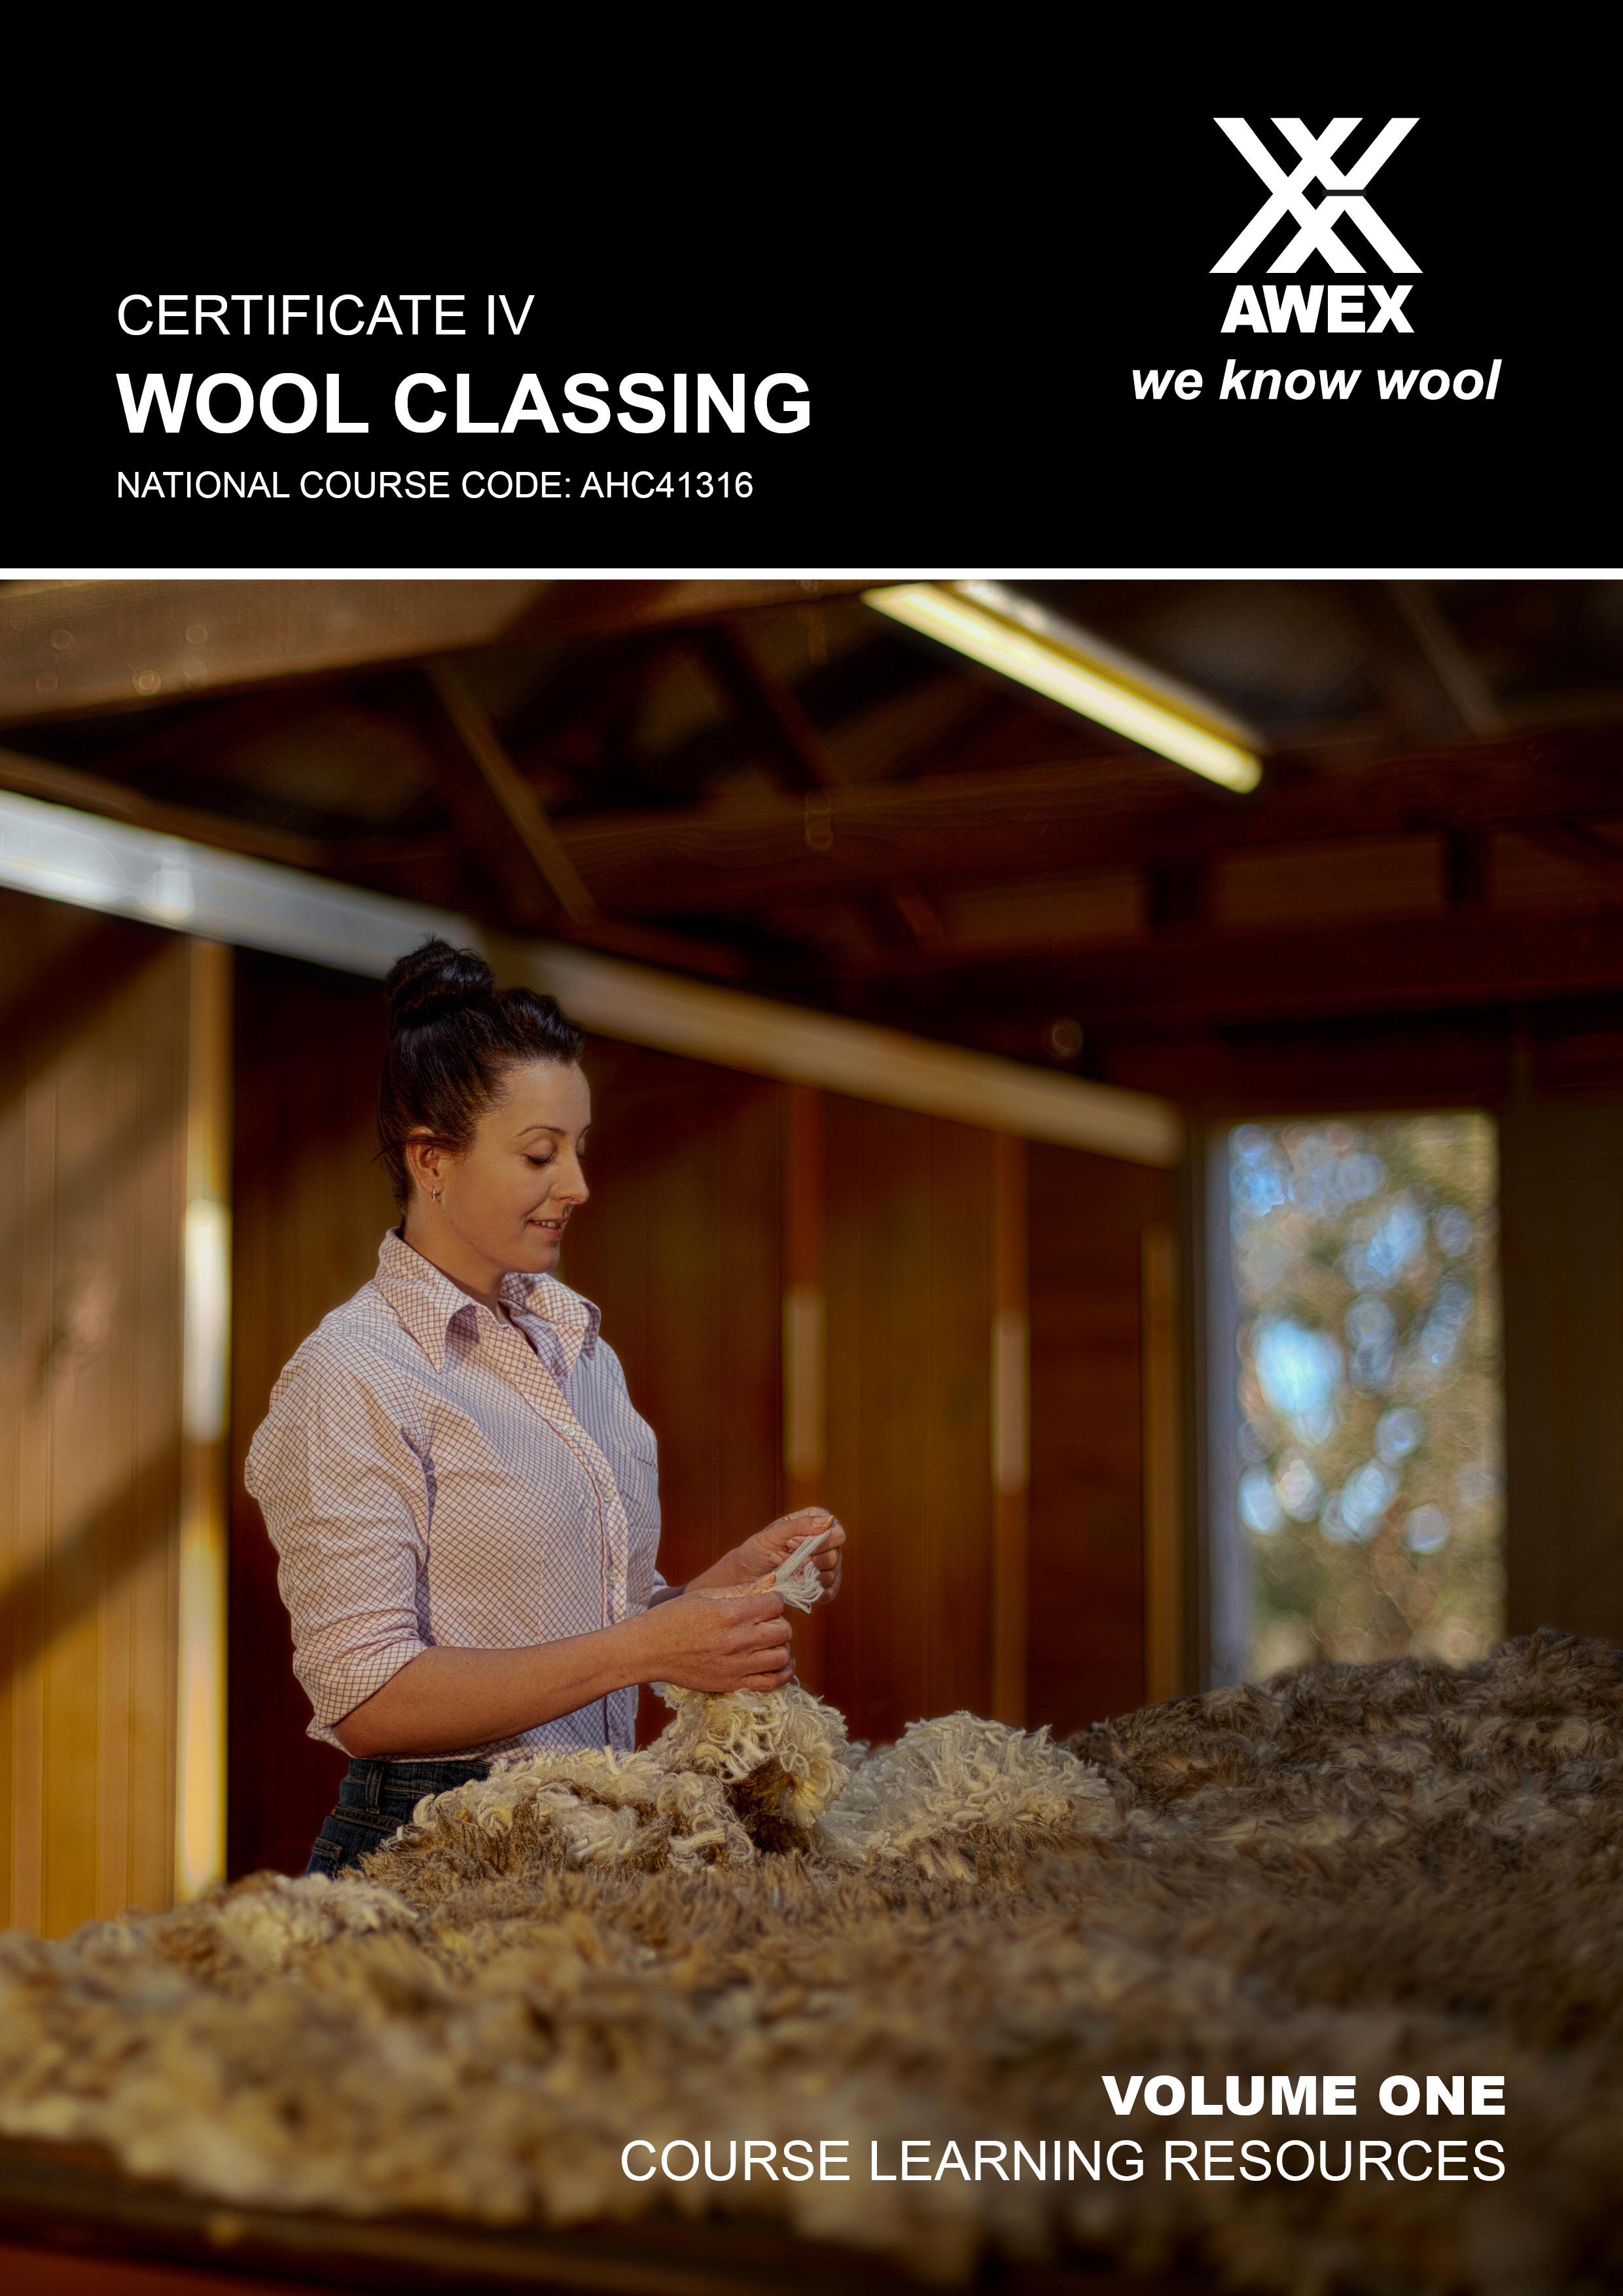 AHC41316 Certificate IV Wool Classing: Volume 1